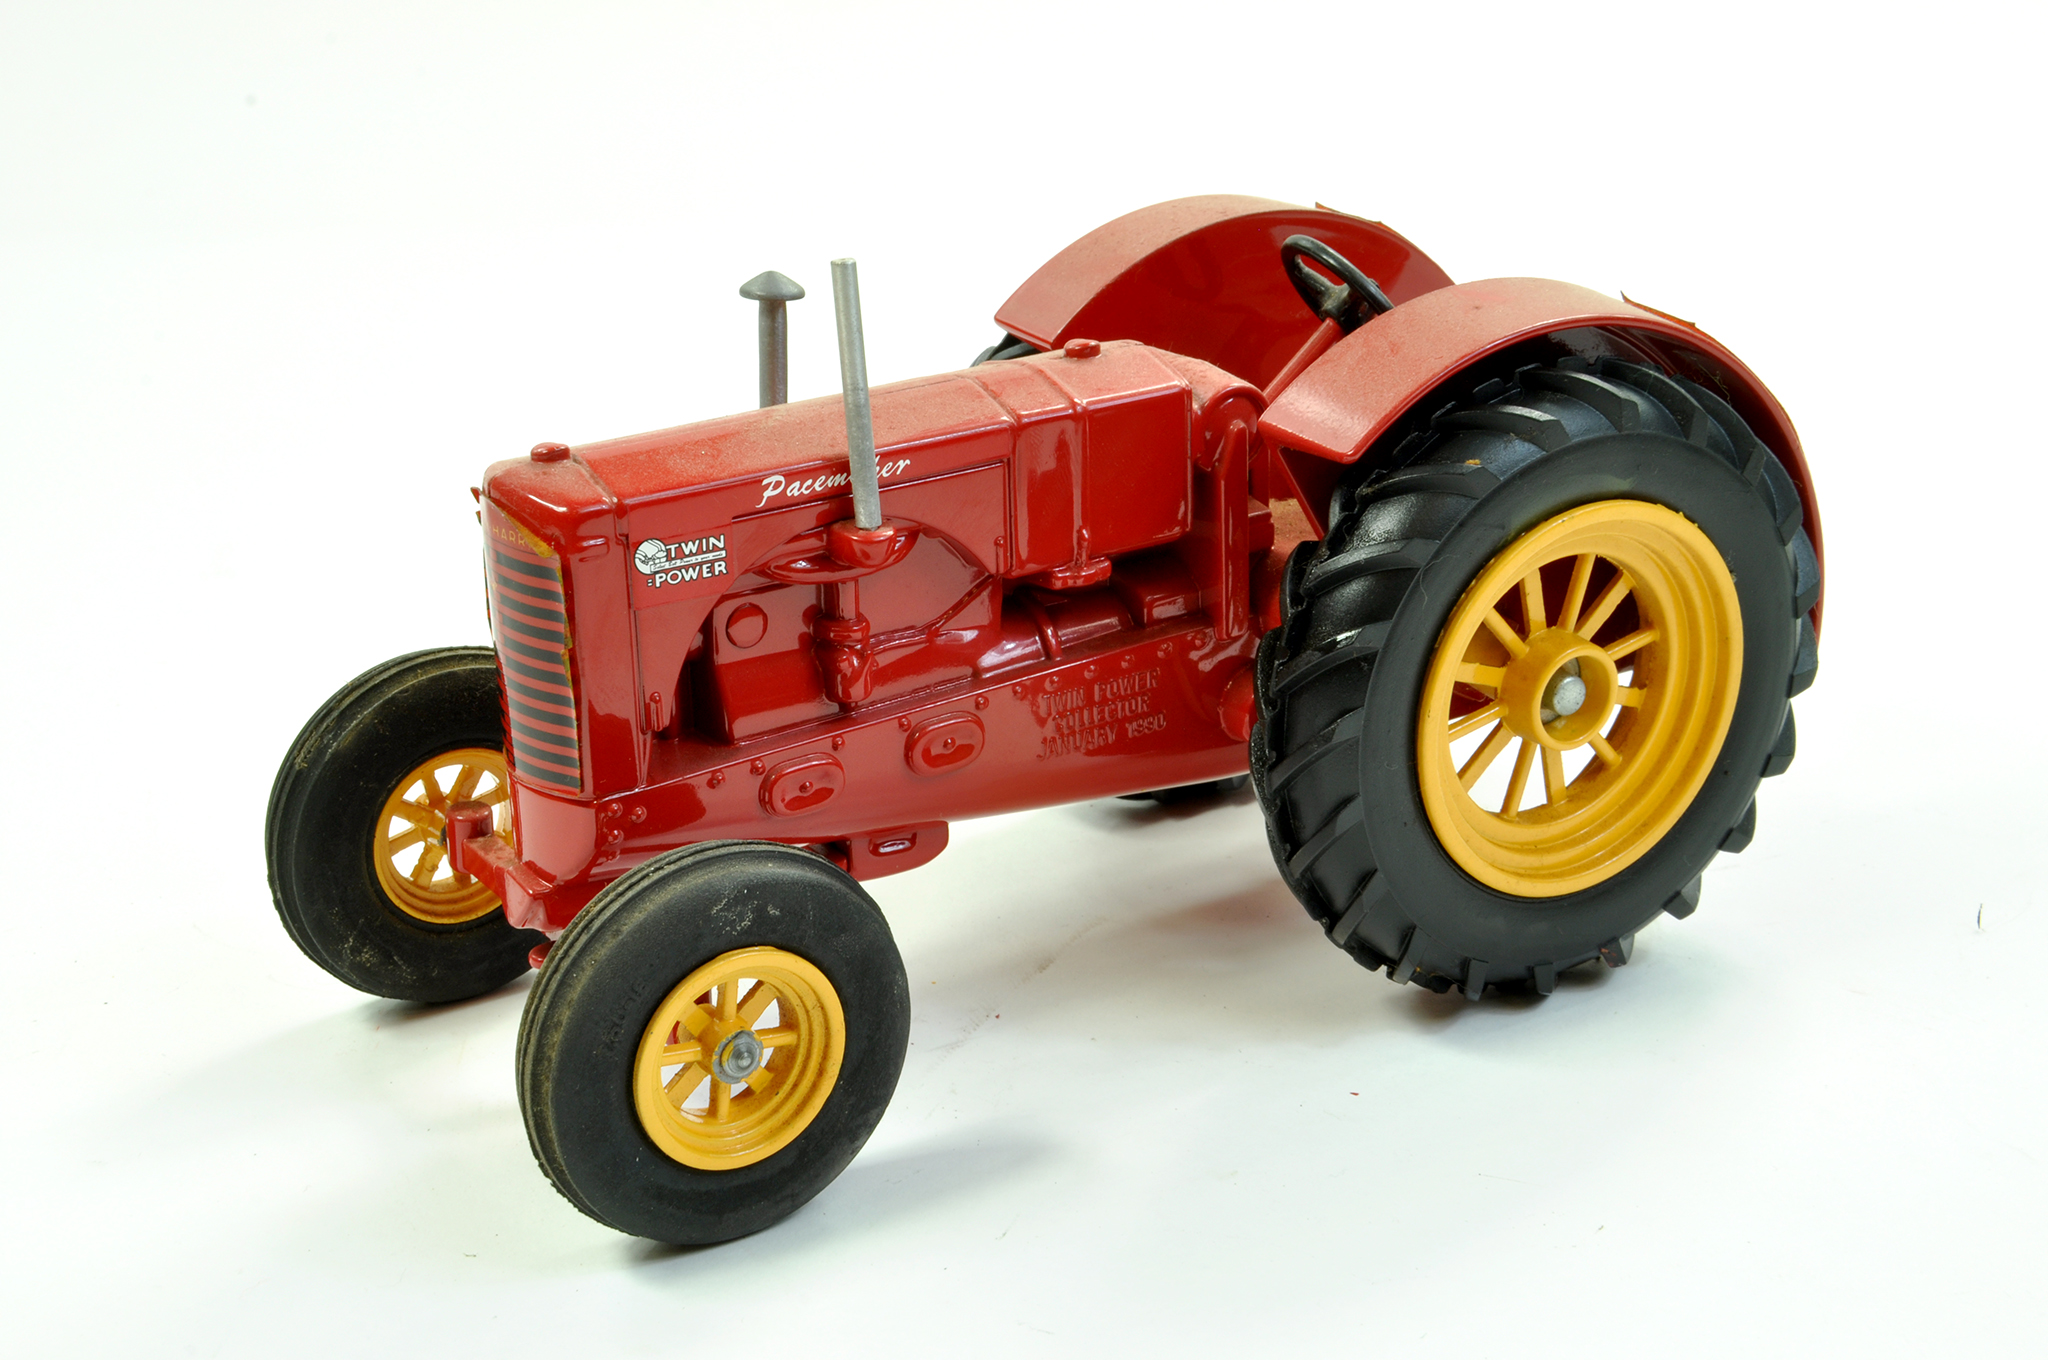 Lot 32 - Spec Cast 1/16 diecast Farm issue comprising Massey Harris Pacemaker Tractor. Generally Excellent.